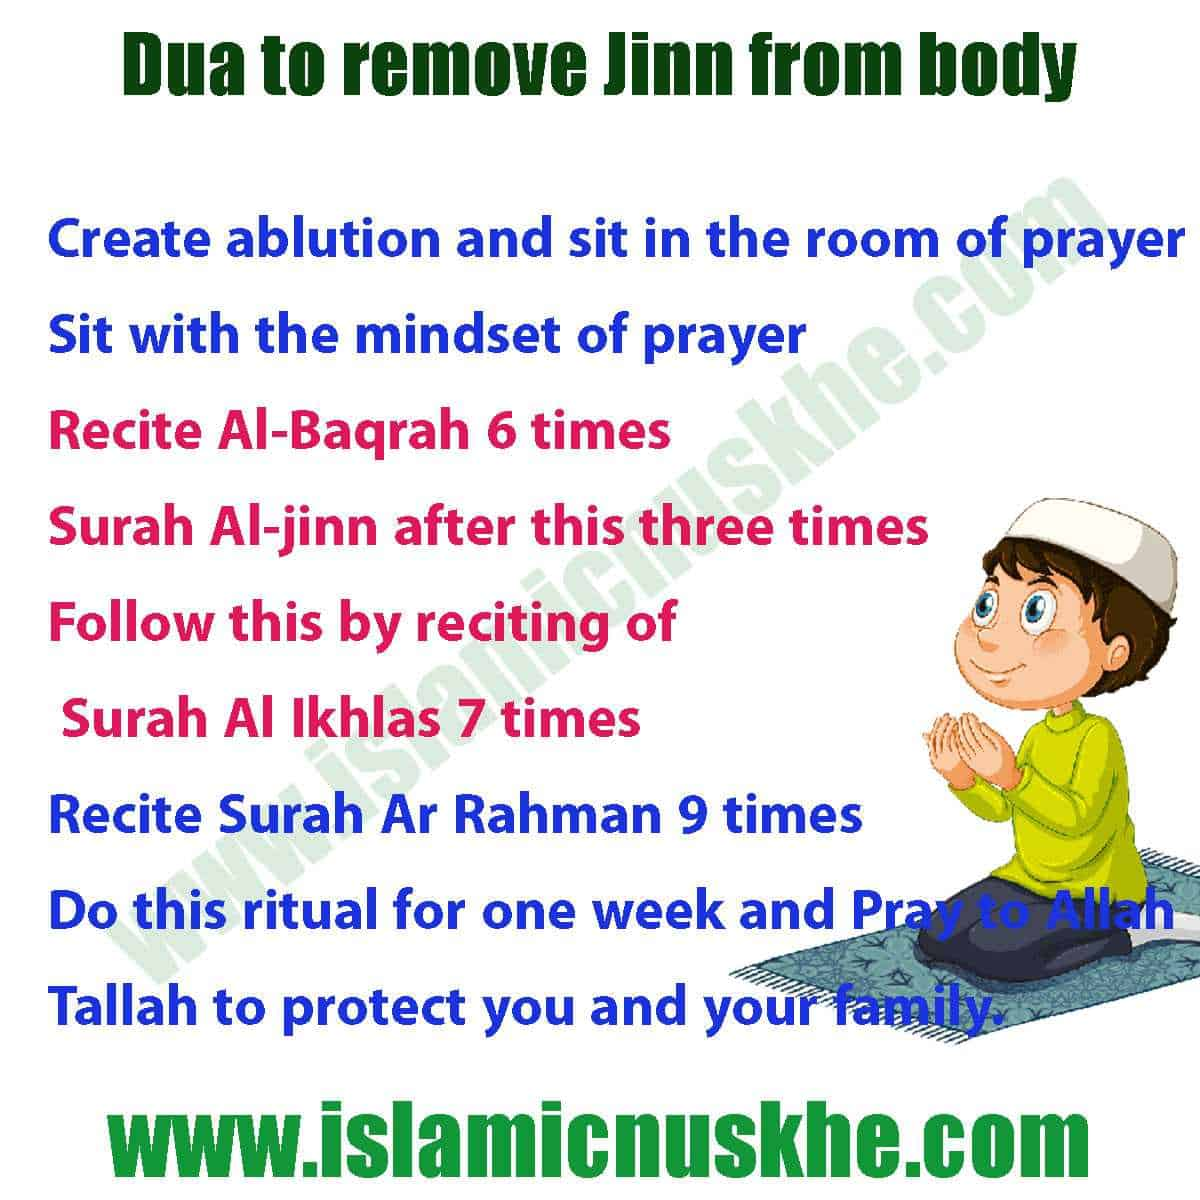 Here is Dua to remove Jinn from body Step by Step